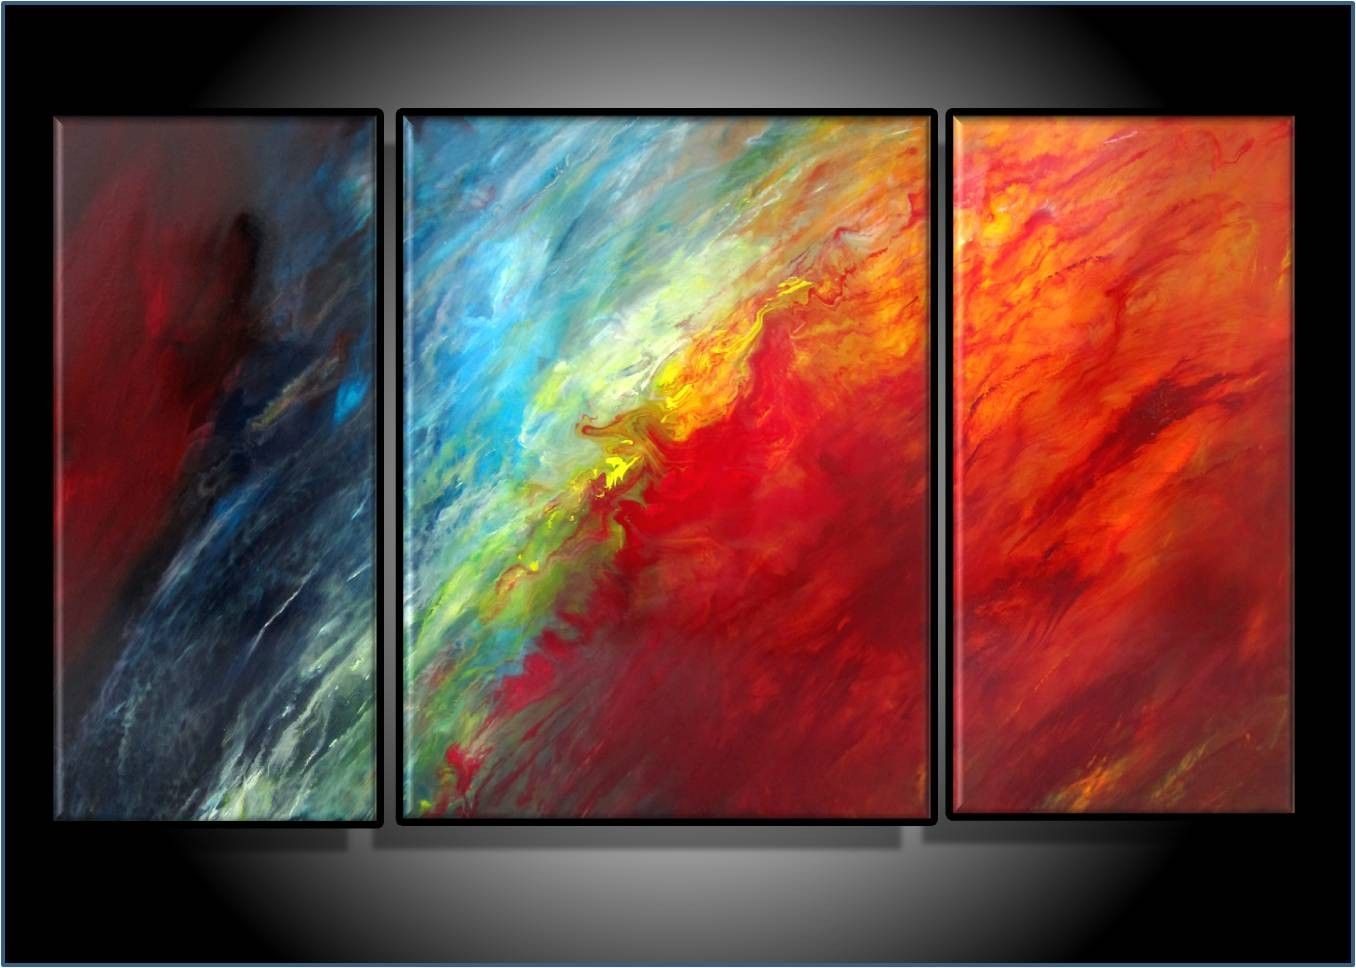 Art Oil Paintings Gallery Wallpaper Hd Abstract Art Paintings Hd Wallpapers Wallpapers Hd Fre Abstract Art Painting Modern Art Abstract Best Abstract Paintings